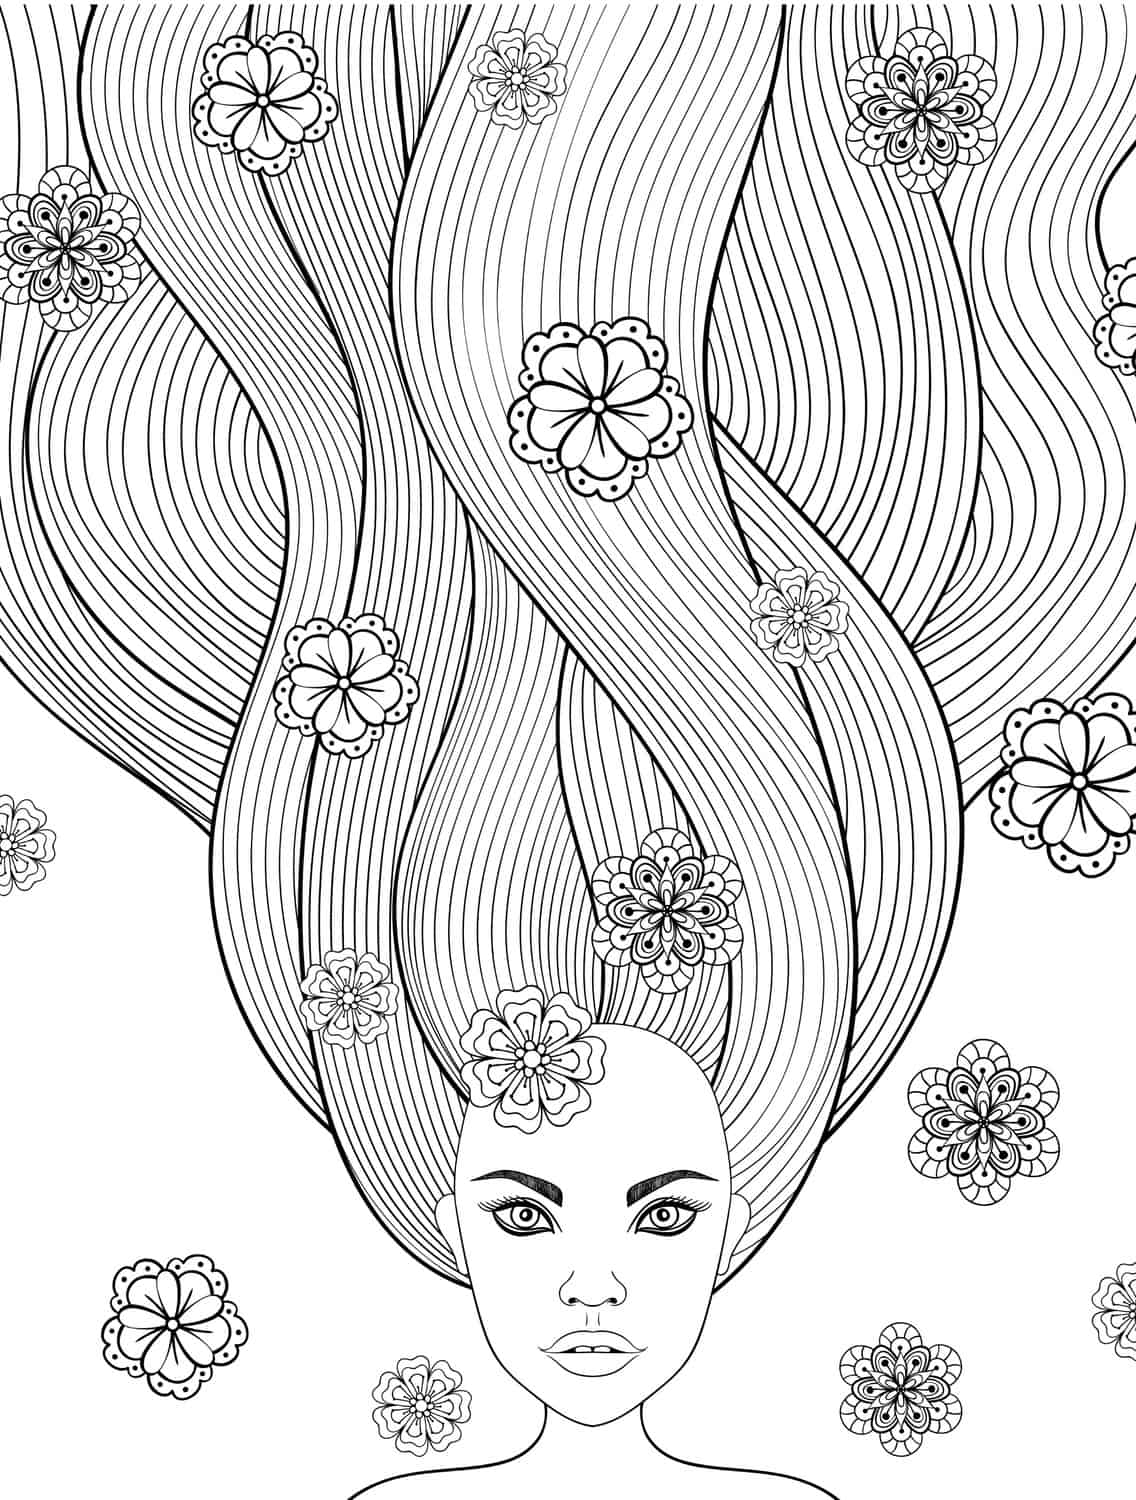 girls hair coloring pages - photo#21